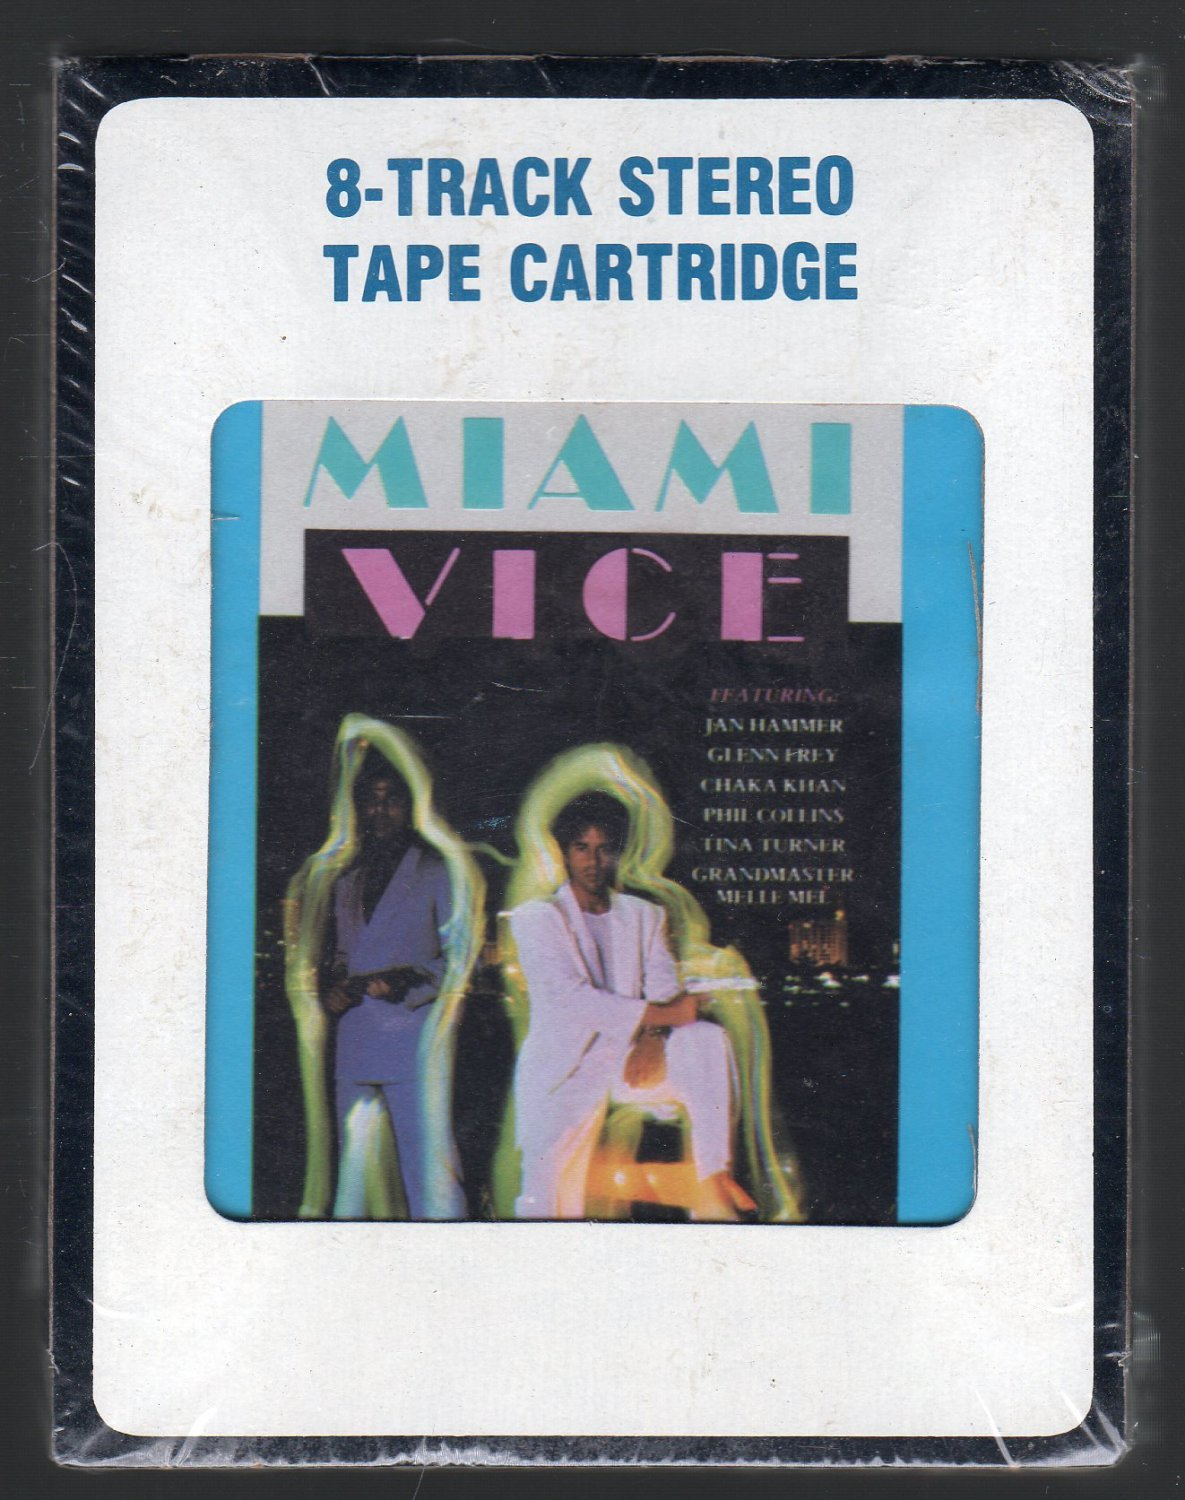 Miami Vice - Music From The Television Series 1985 CRC Sealed A52 SOLD 8-track tape